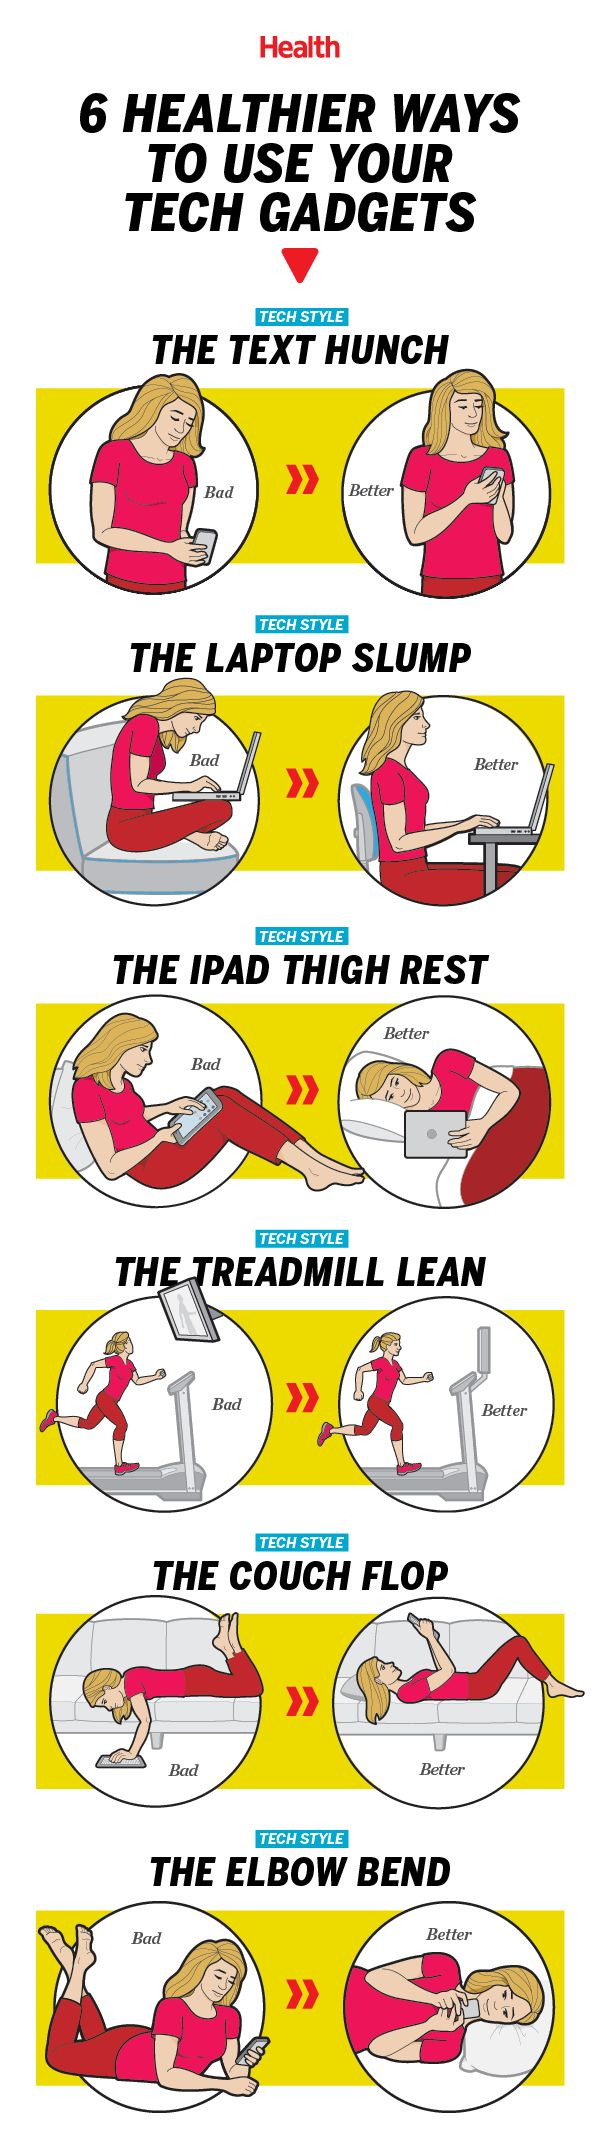 6 Tips On Healthier Posture While Using Cellphone And Other Gadgets Infographic